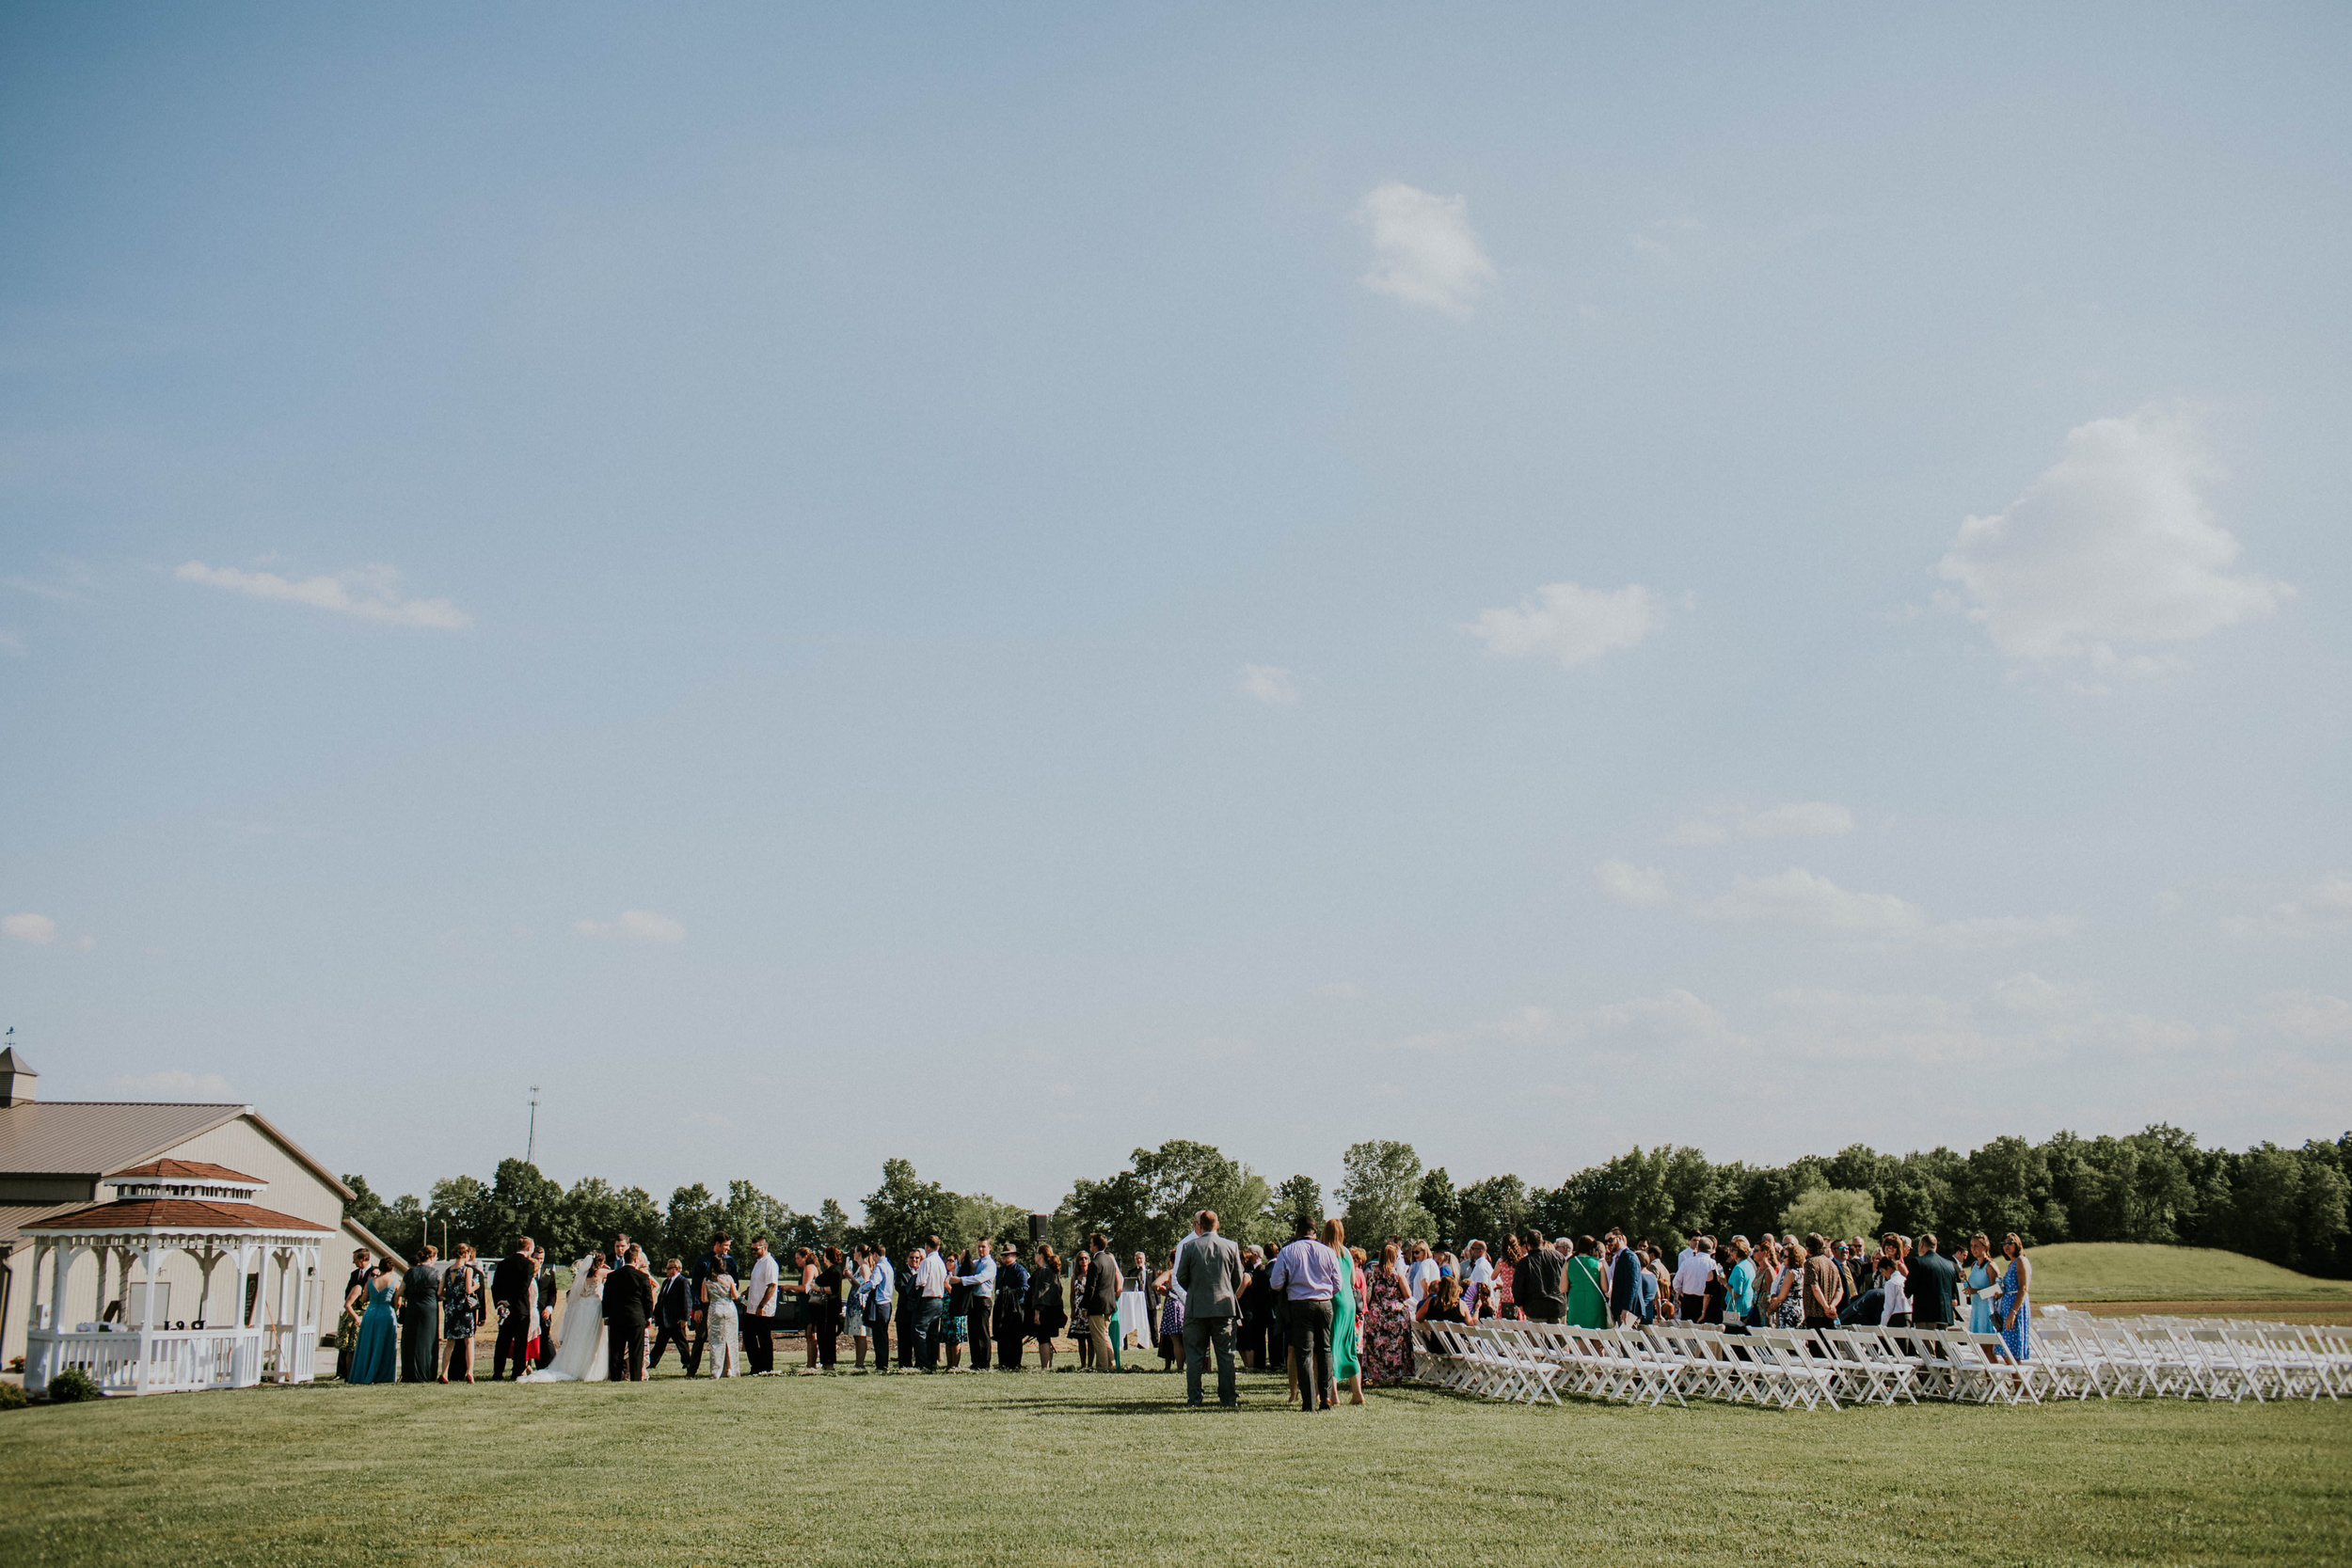 columbus ohio wedding photographer grace e jones photography144.jpg